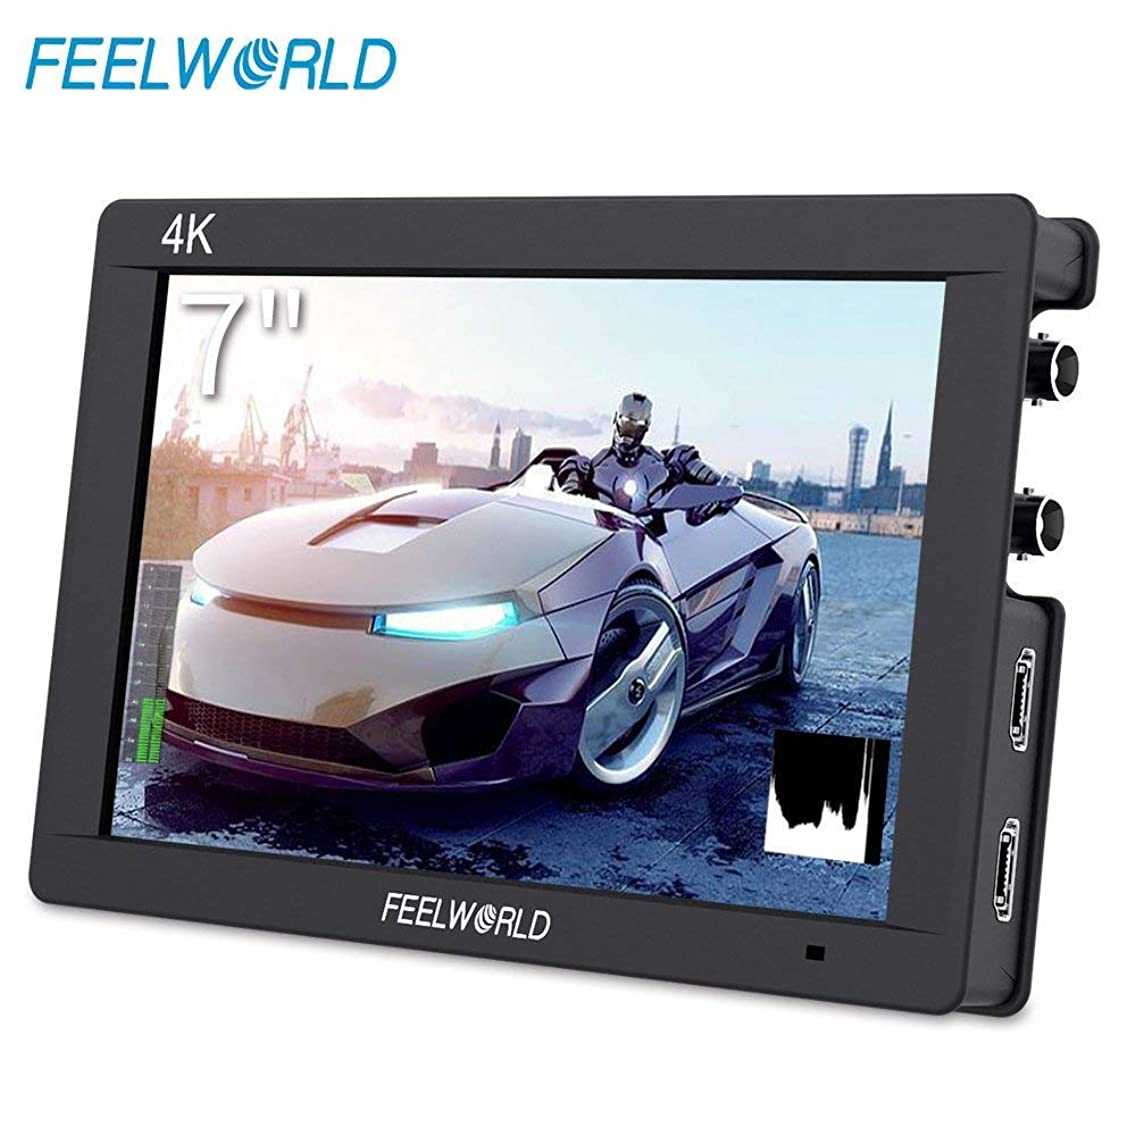 FEELWORLD FW703 7 Inch DSLR On Camera Field Monitor 3G SDI 4K HDMI Input Output Video Assist Peaking Focus IPS Full HD 1920x1200